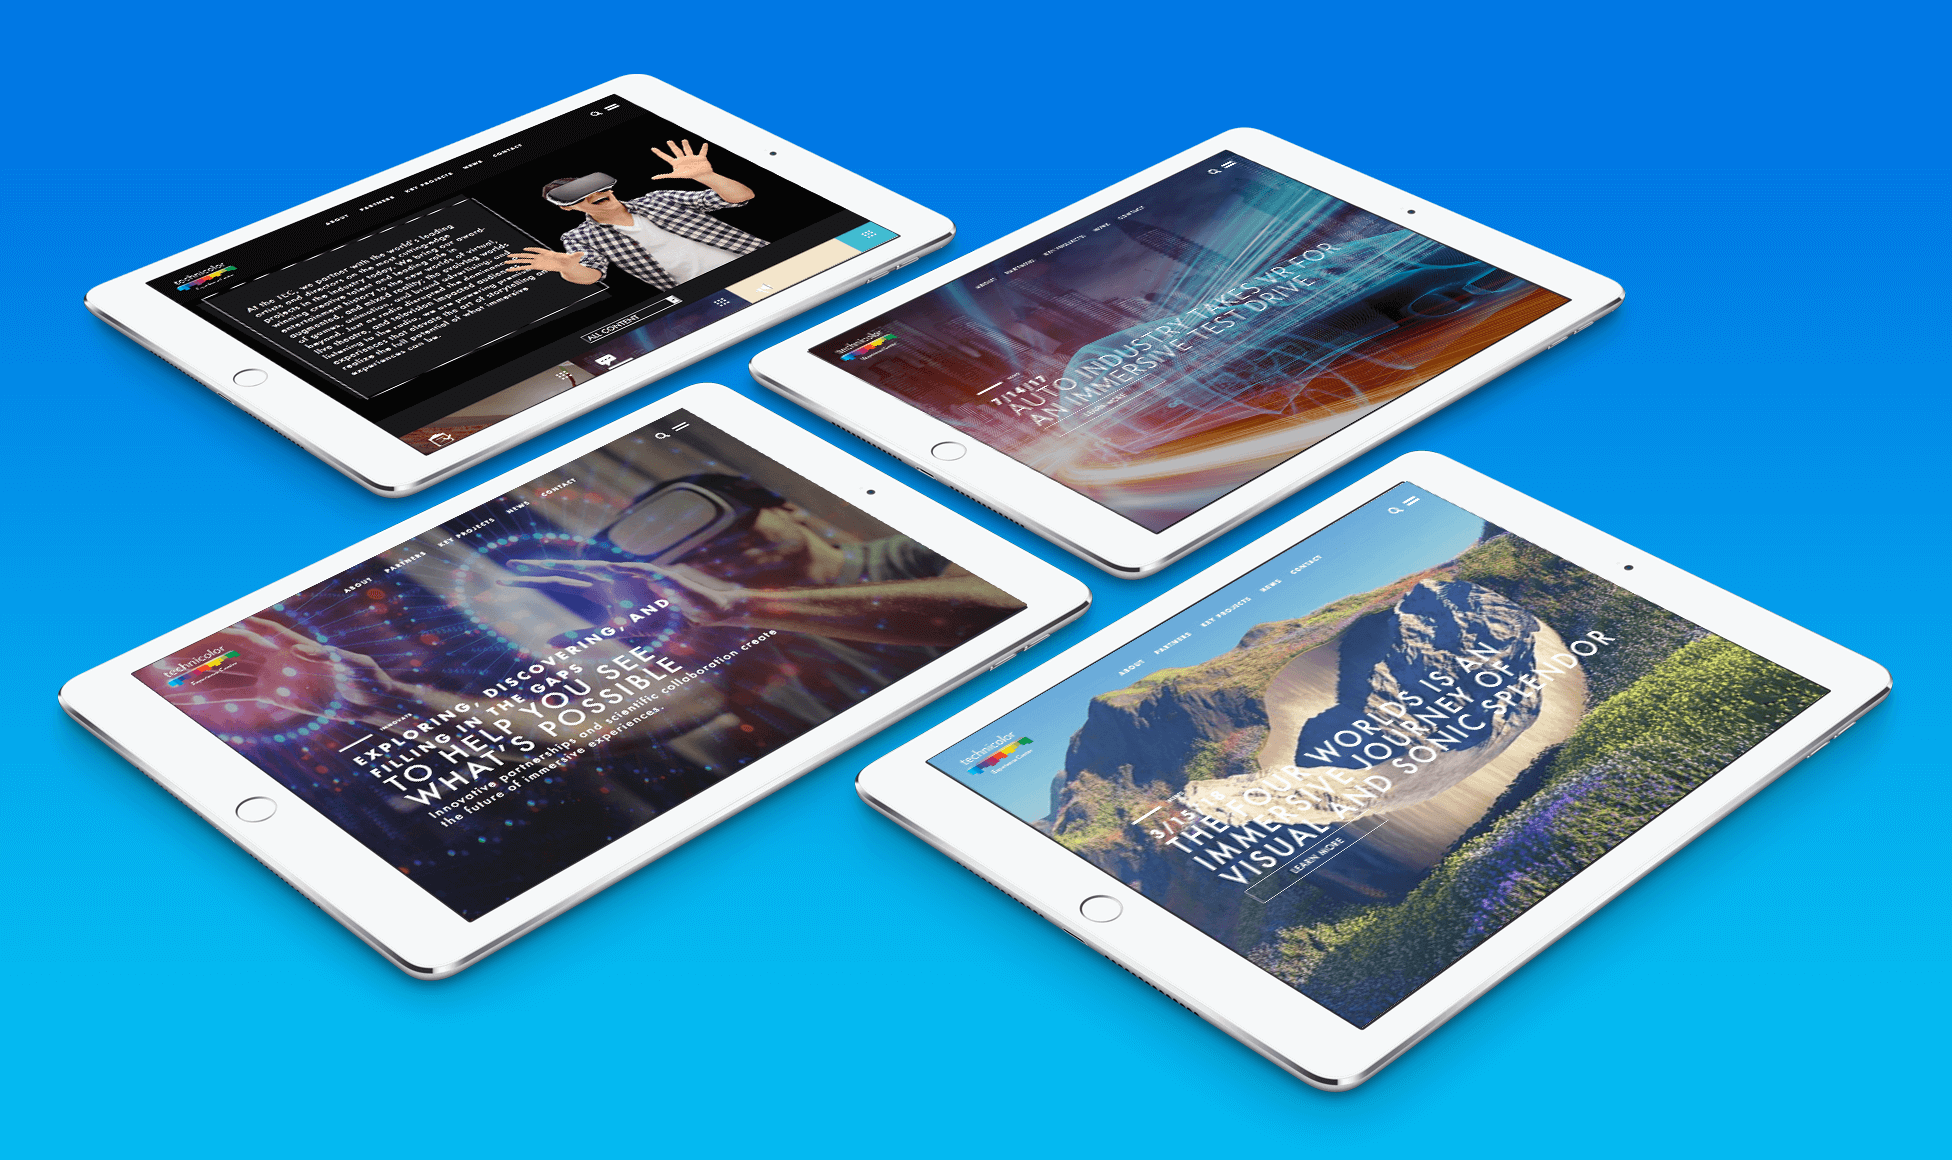 Technicolor Experience Center pages optimized for iPad